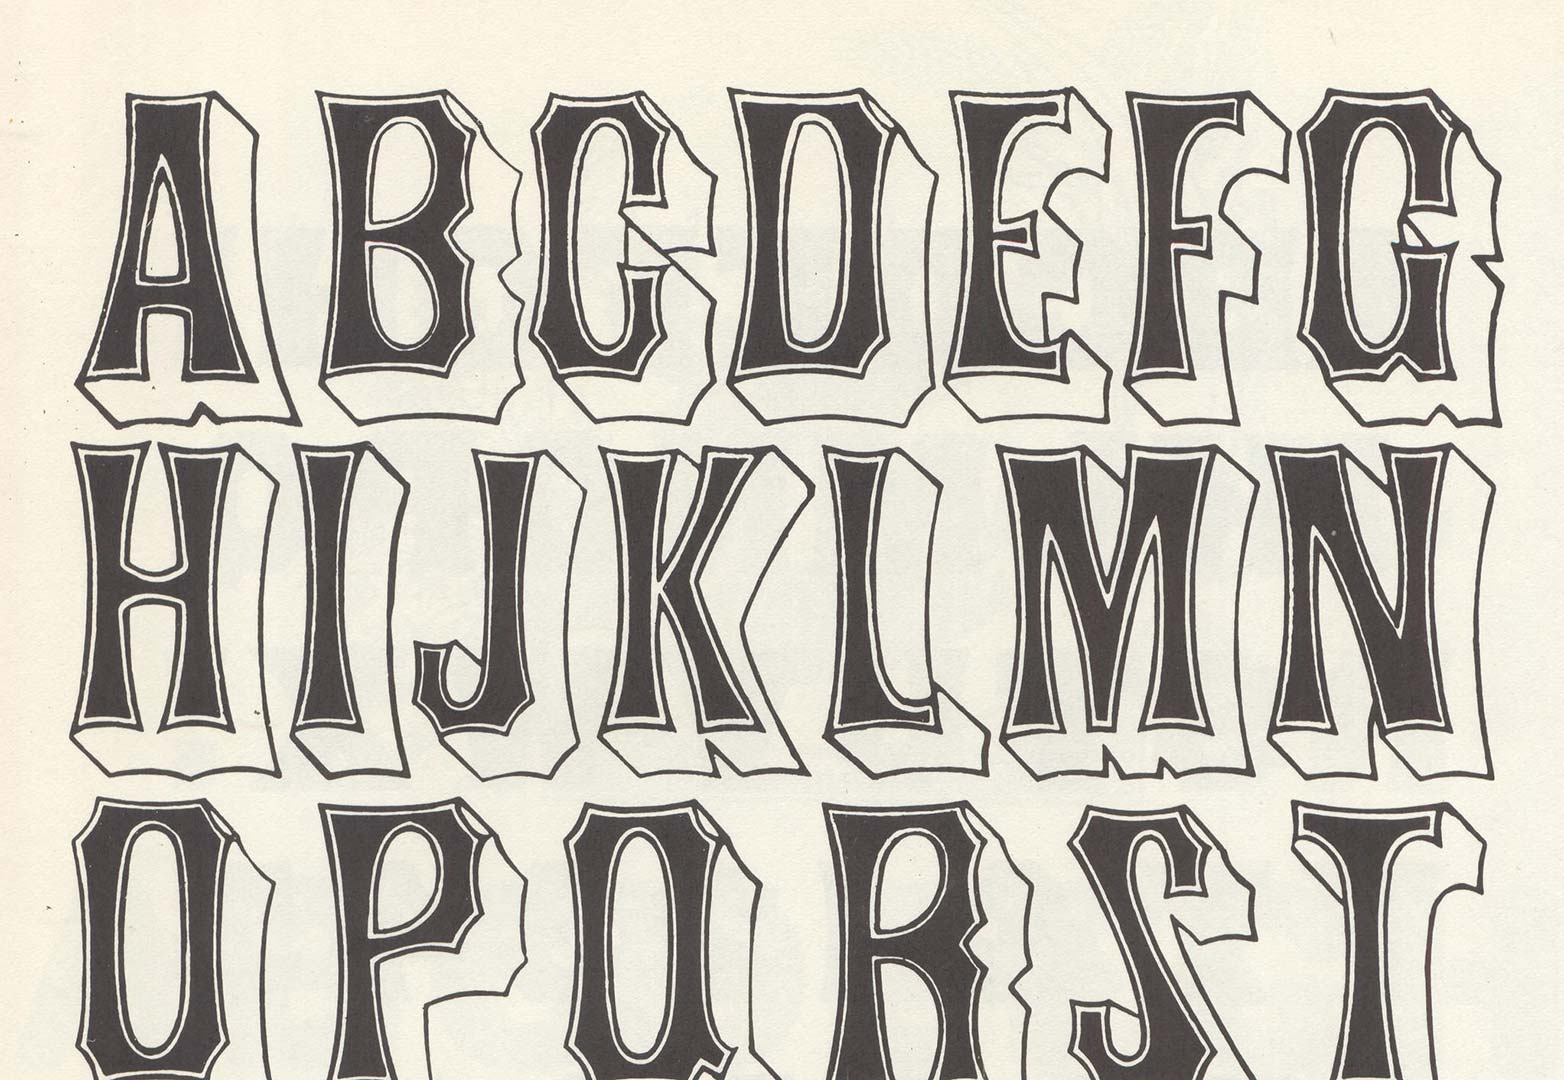 11 Unique Font Styles Images - Creative Font Styles, Font ...  Creative Lettering Styles